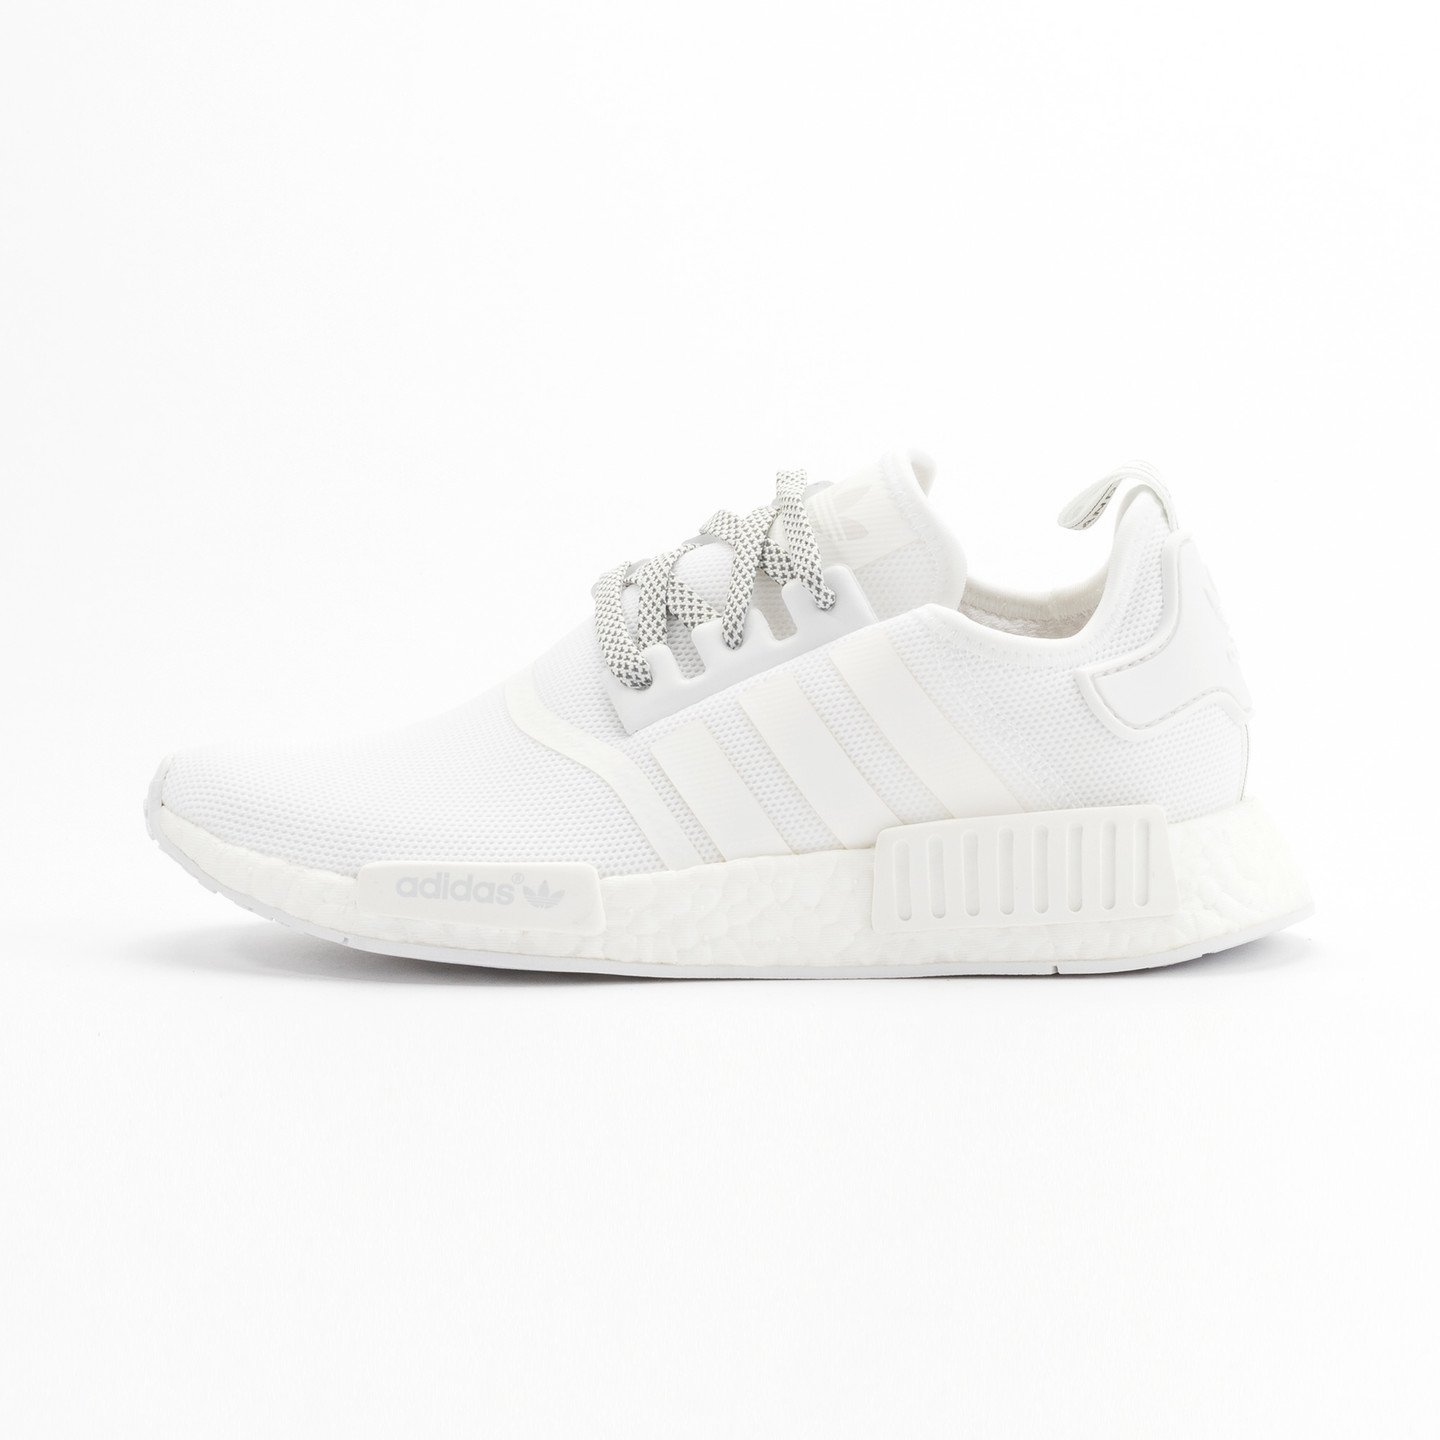 Adidas NMD R1 Runner Triple White S31506-42